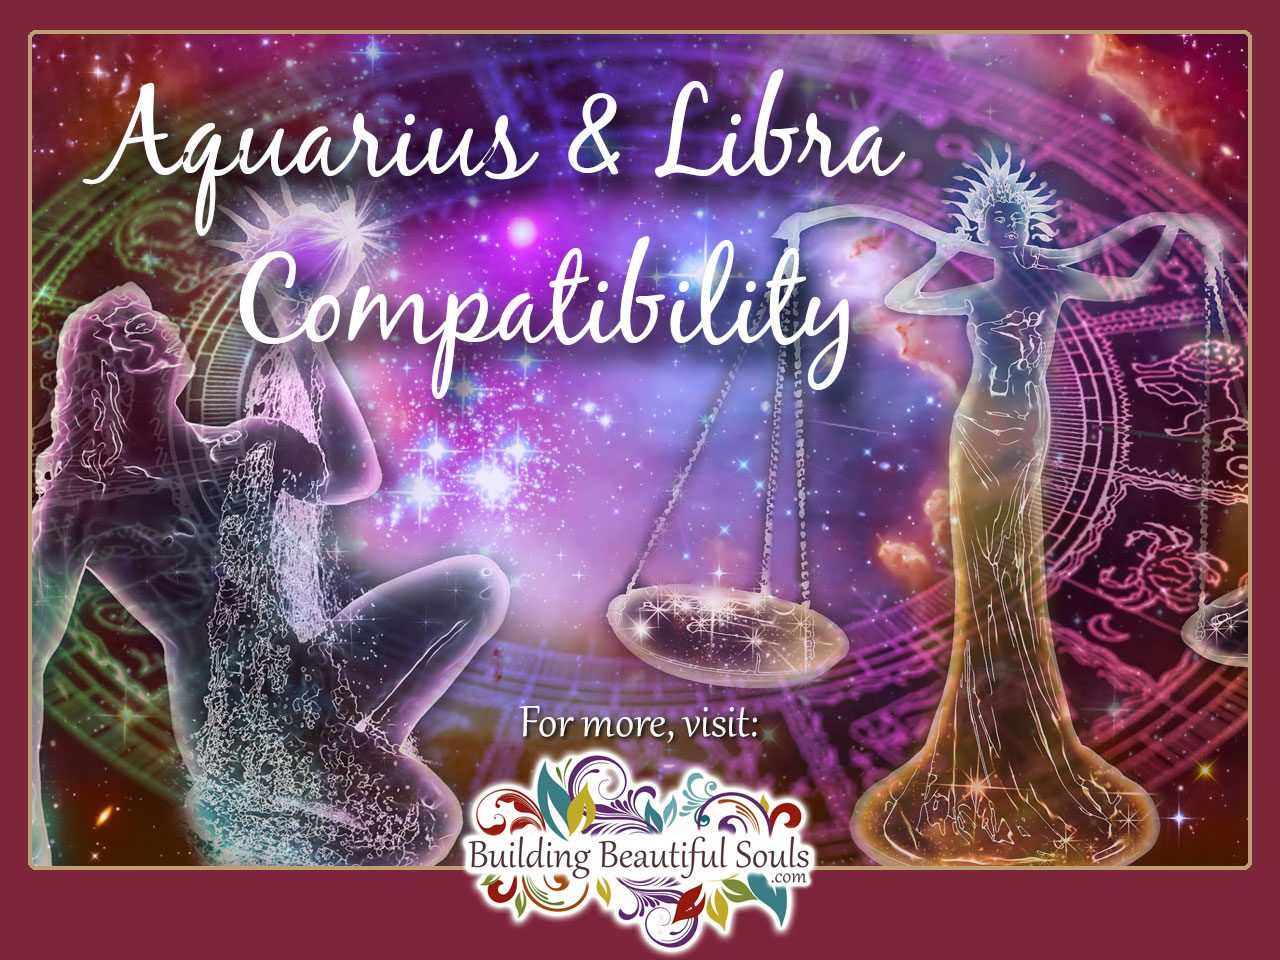 Aquarius and Libra 1280x960